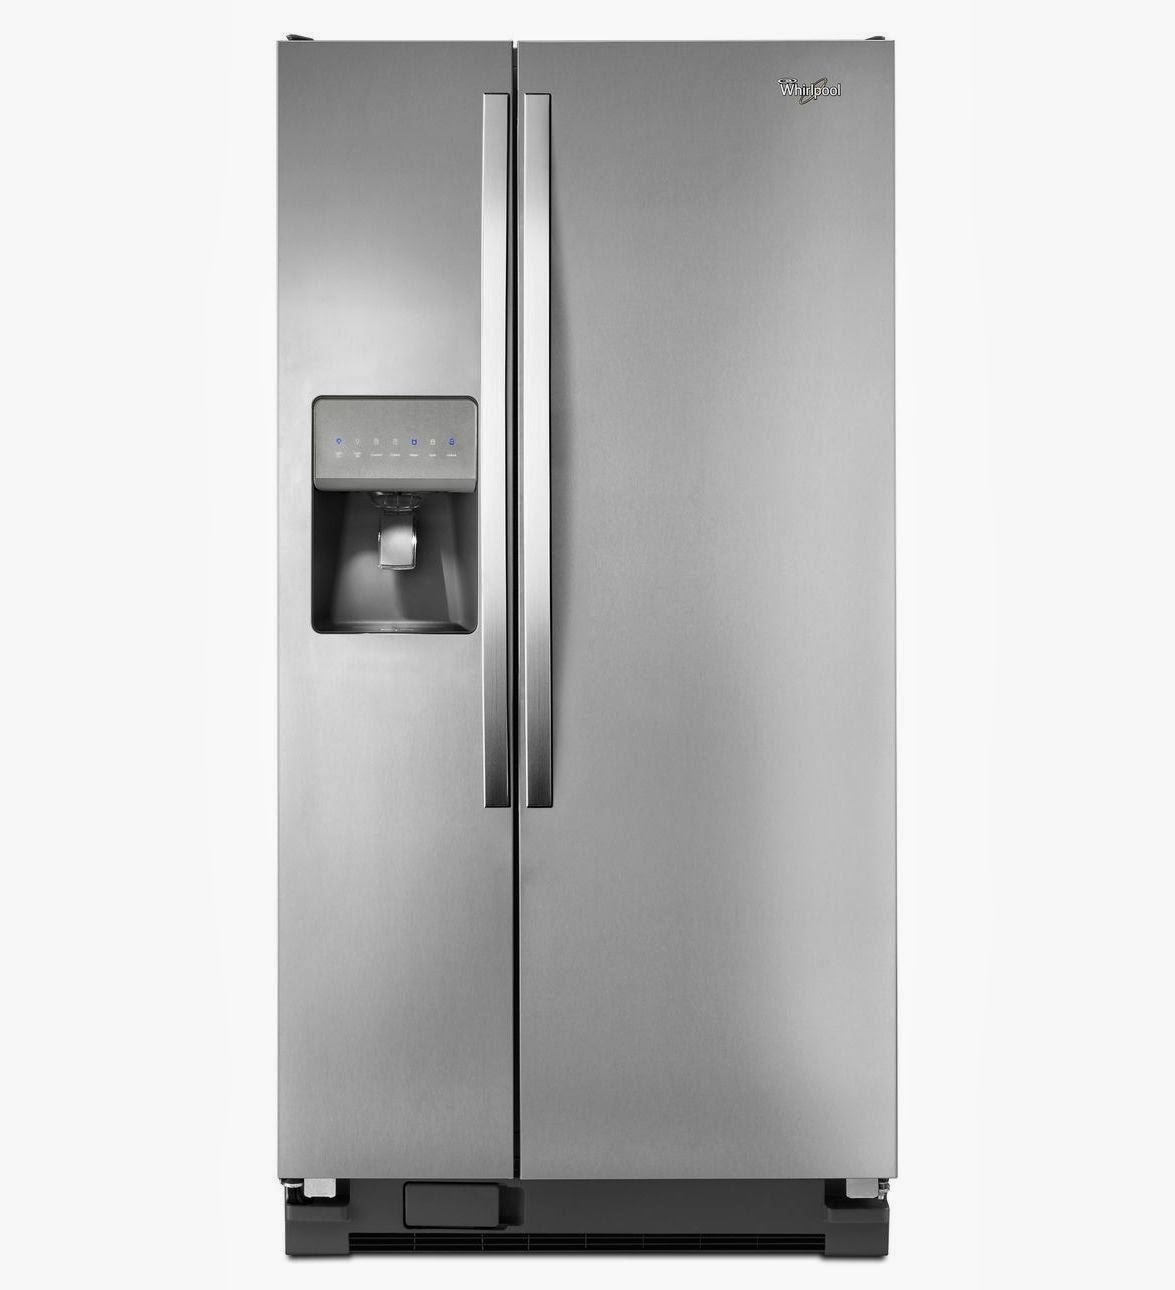 whirlpool refrigerator brand wrs322fdam side by side refrigerator. Black Bedroom Furniture Sets. Home Design Ideas